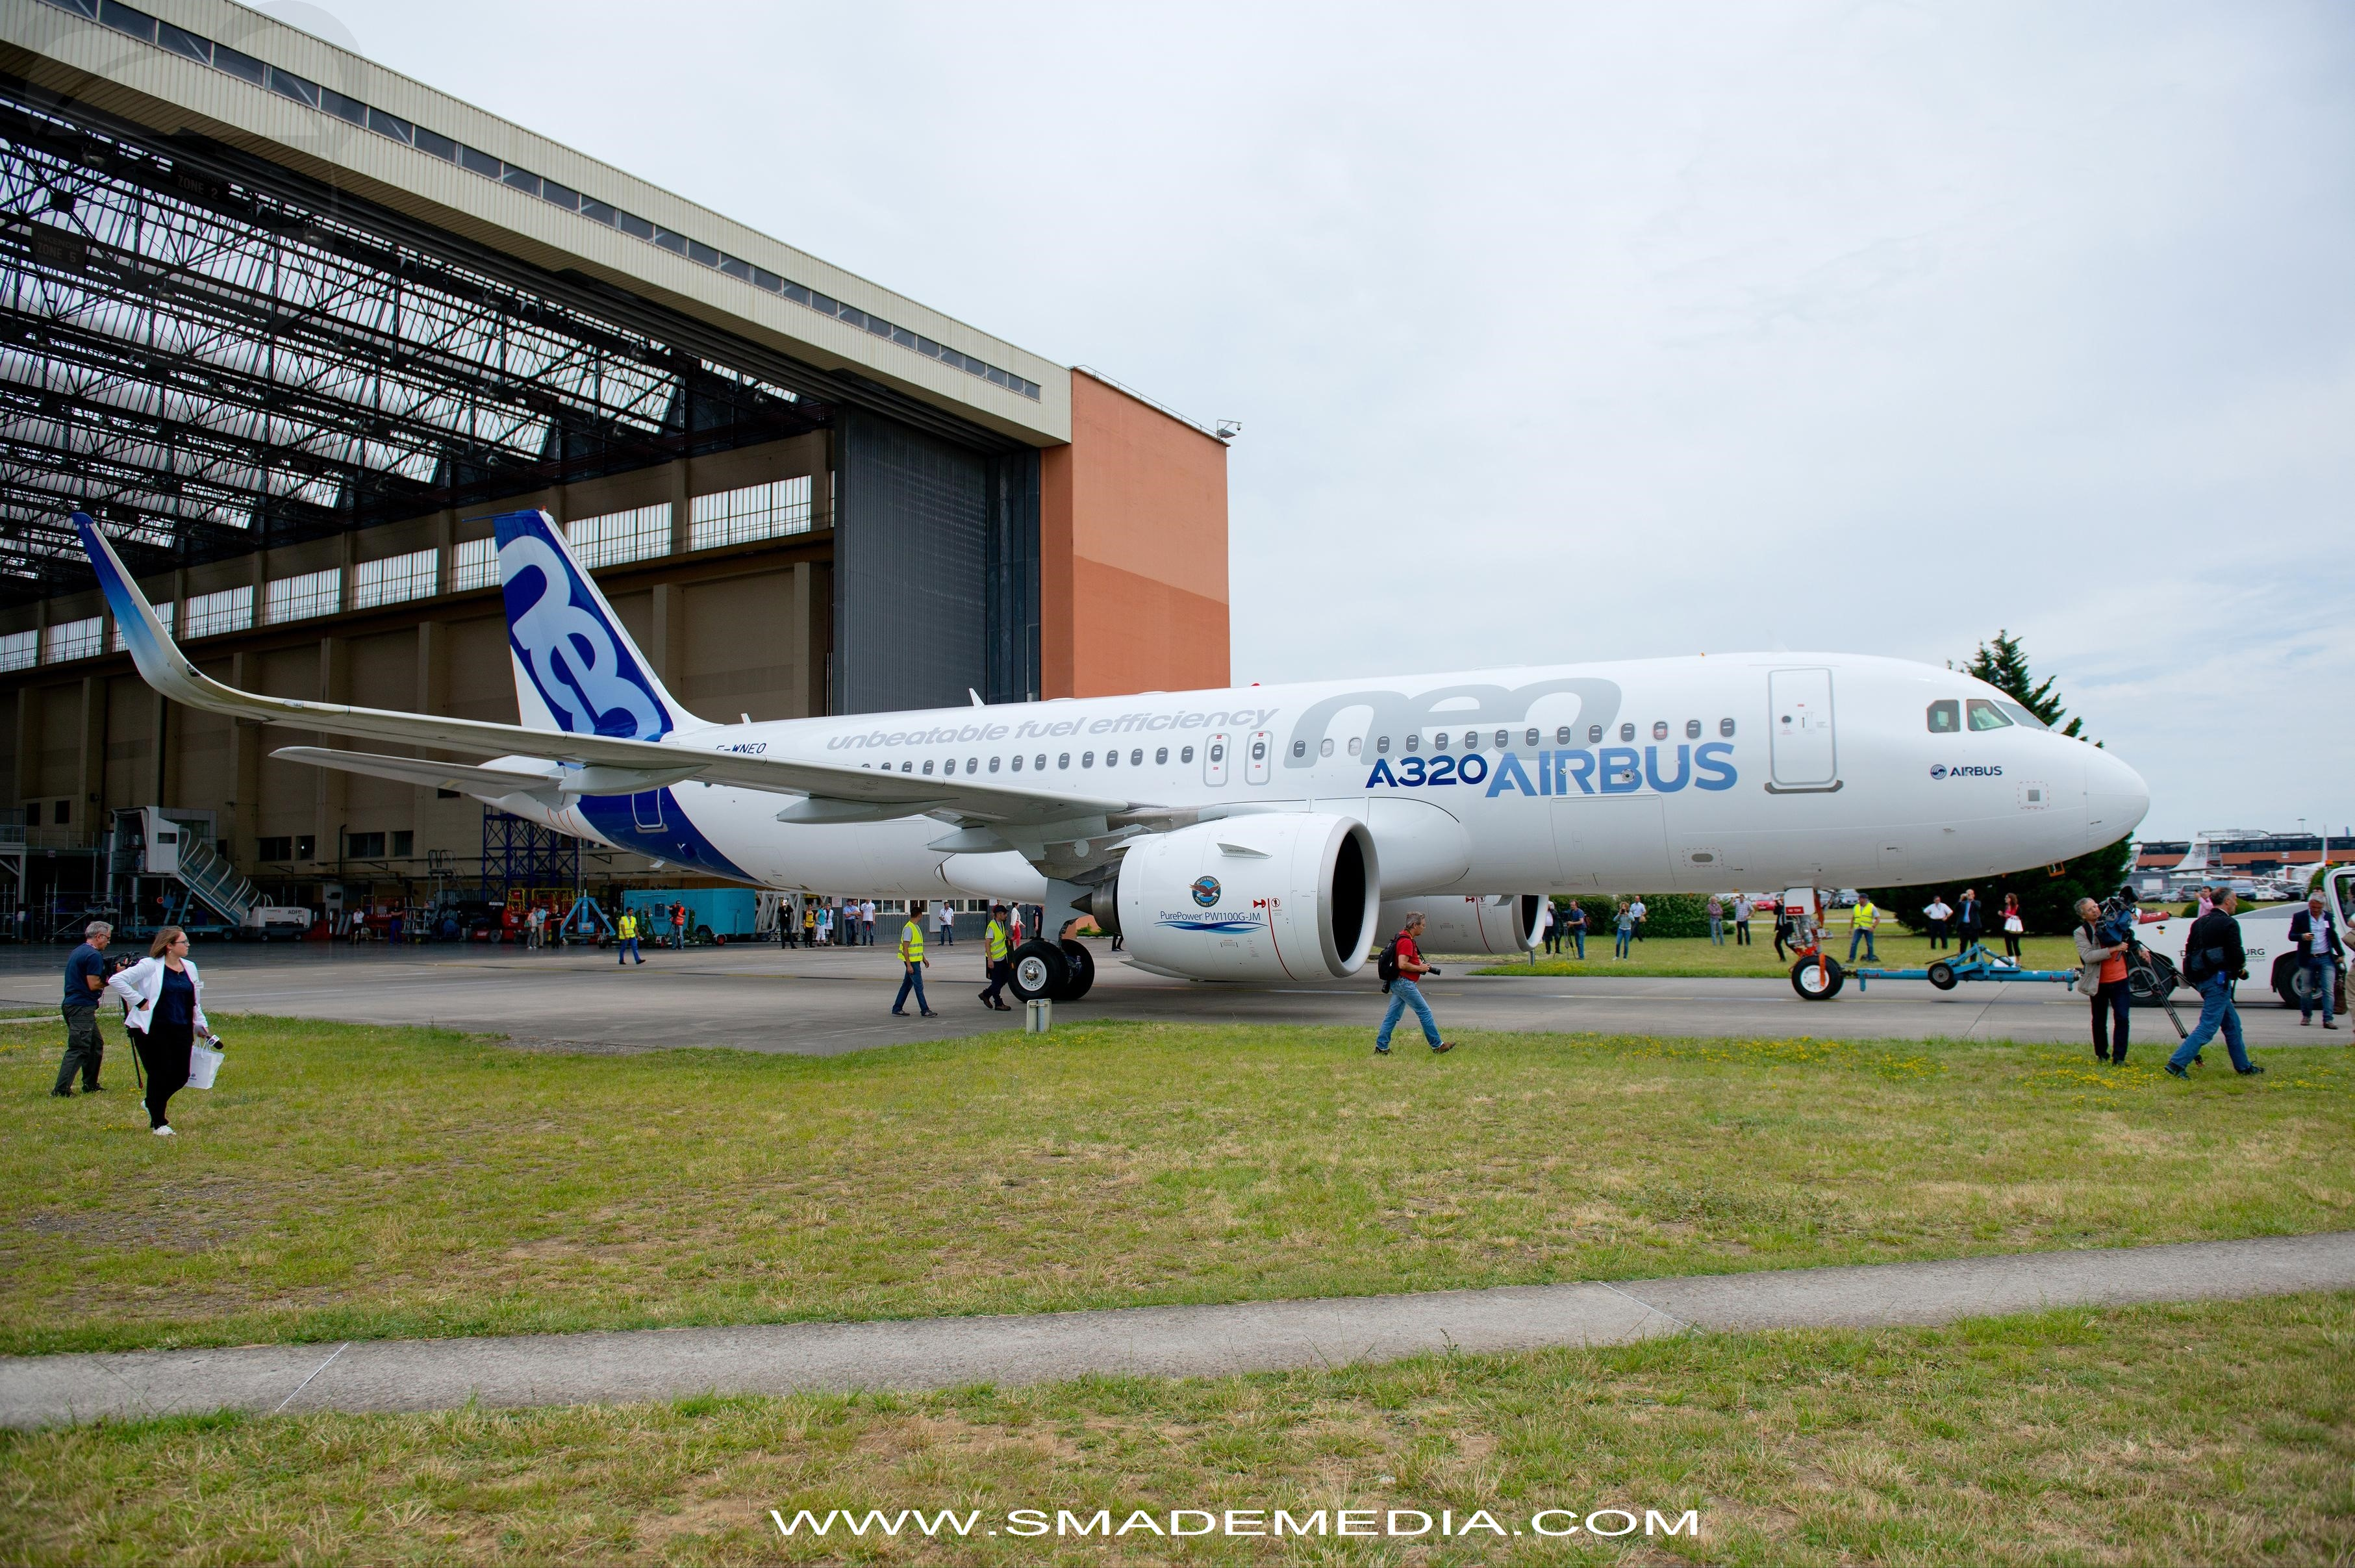 SMADE - Airbus A320neo Roll Out - WWW.SMADEMEDIA (12)